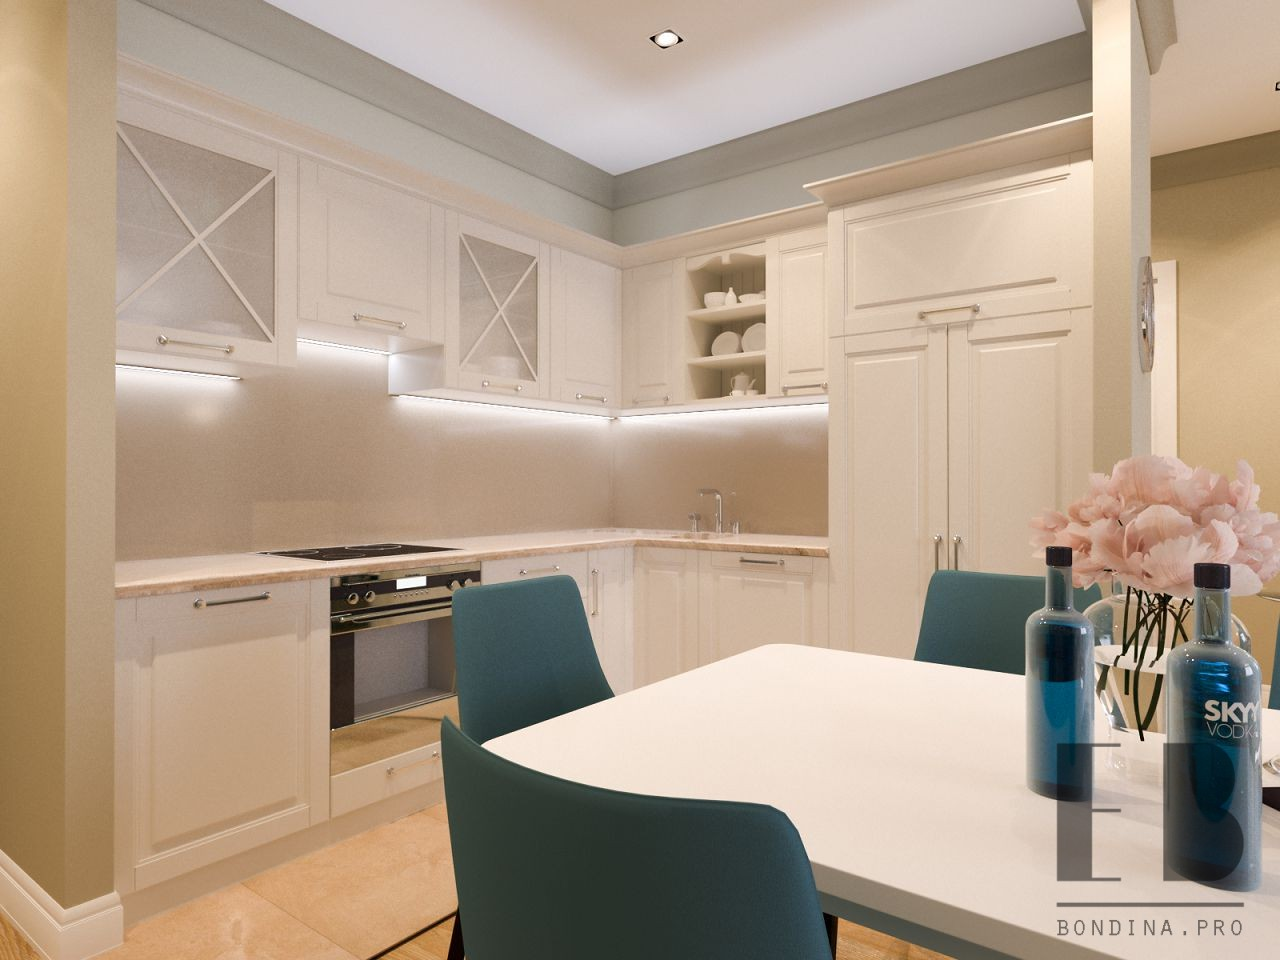 White traditional kitchen cabinets with beige walls